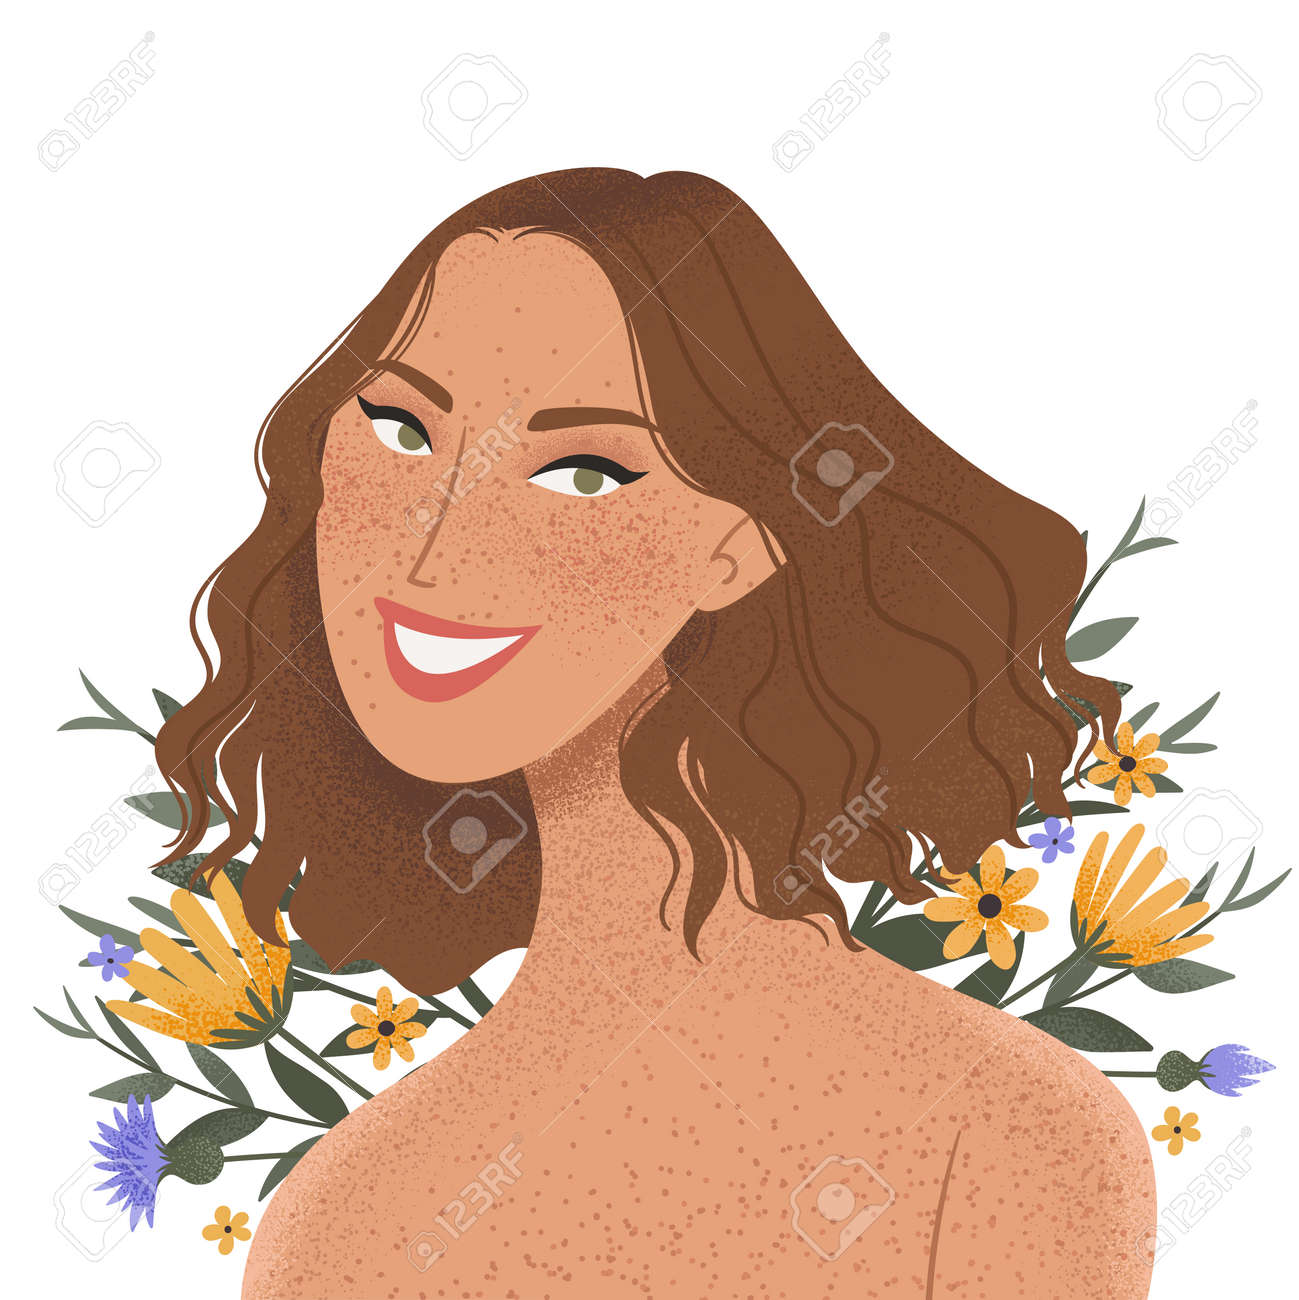 Beauty female portrait decorated with flowers. Elegant woman avatar with floral background. Vector illustration - 164624867